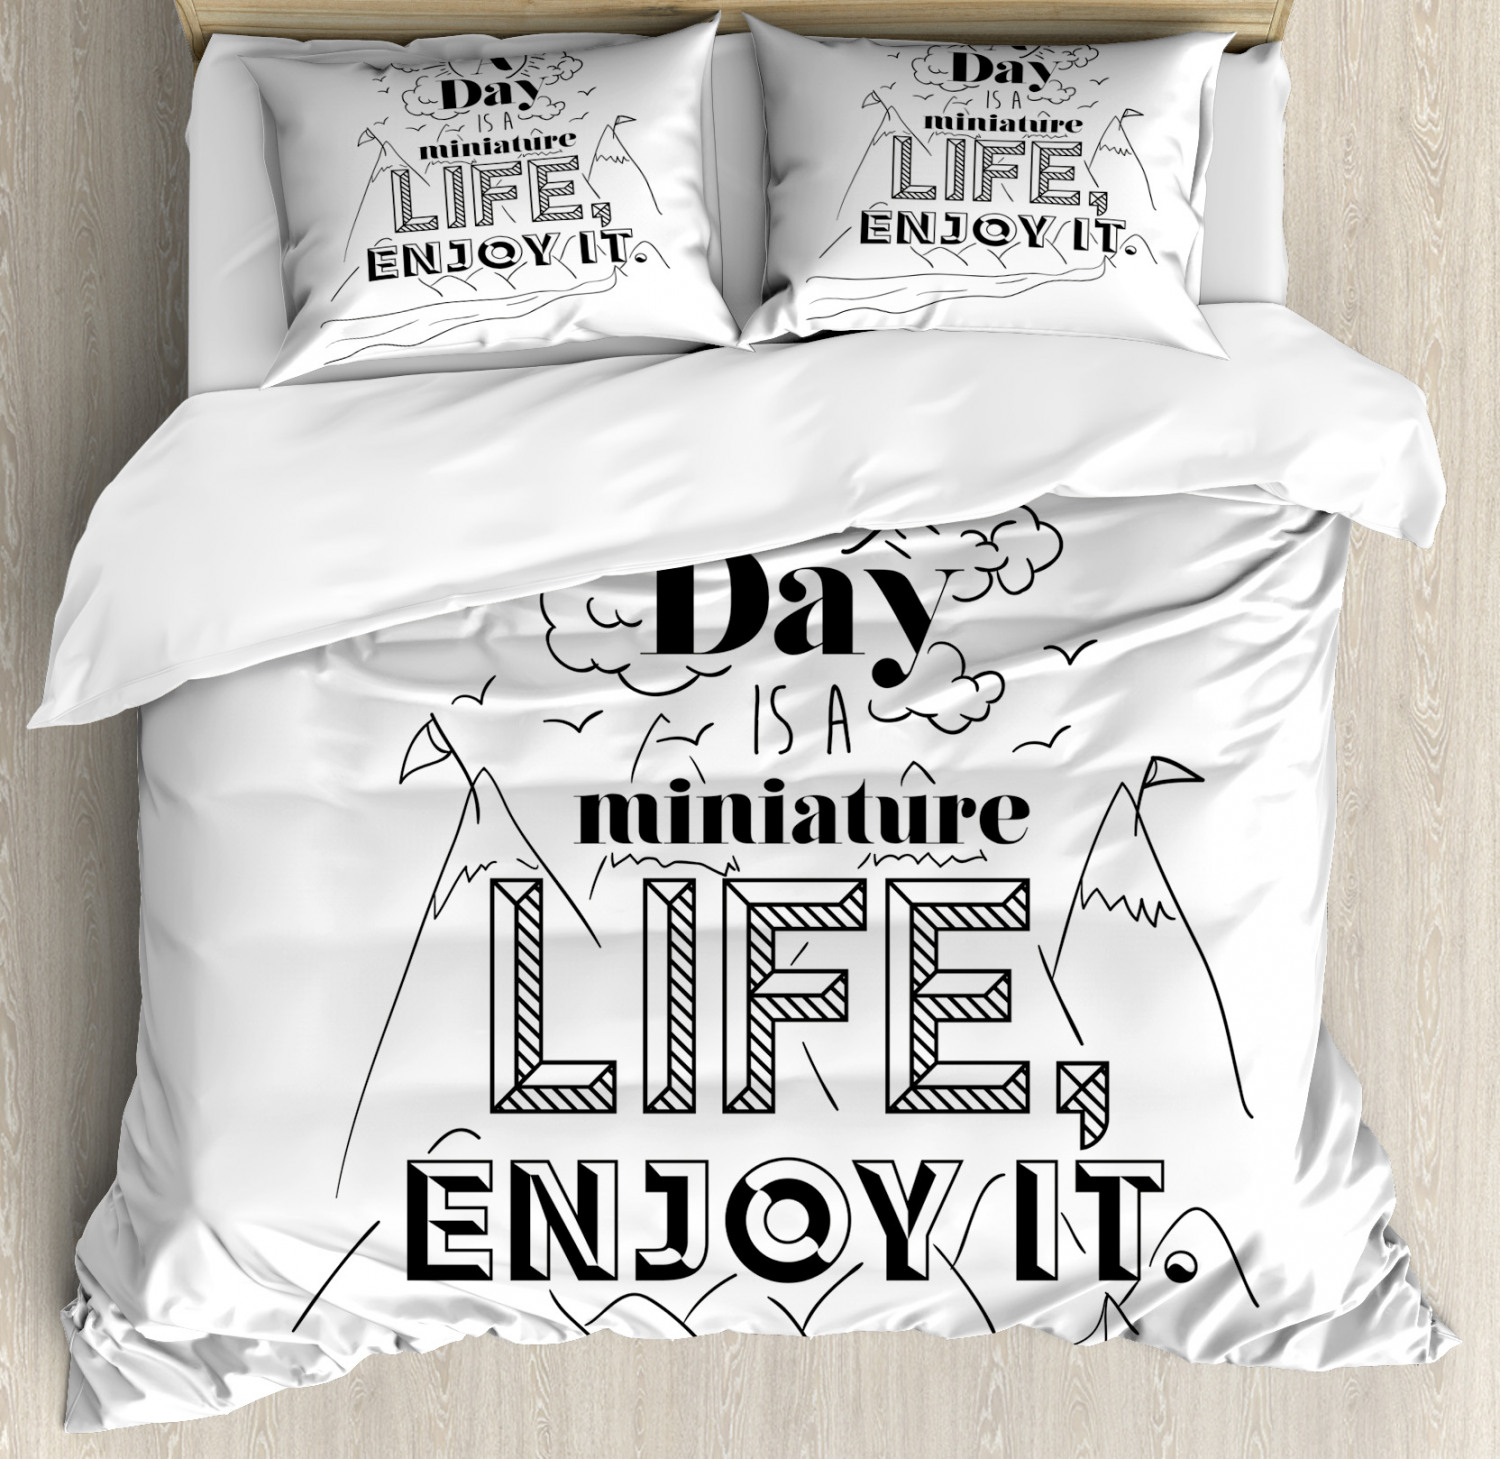 Quote Duvet Cover Set with Pillow Shams Positive Life Message Print